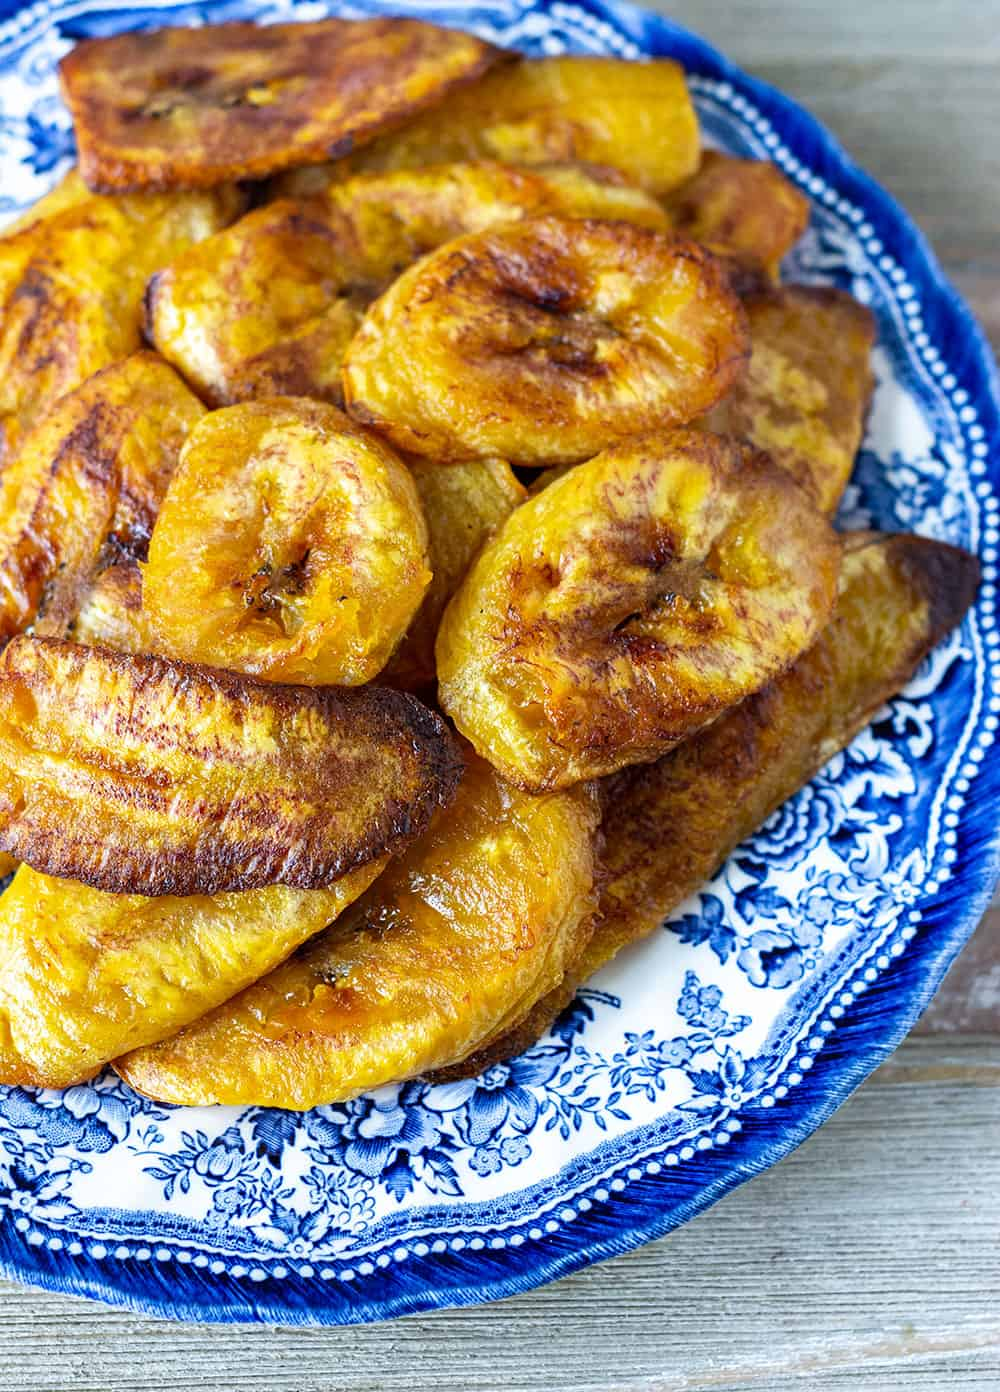 pile of baked plantains on blue and white plate